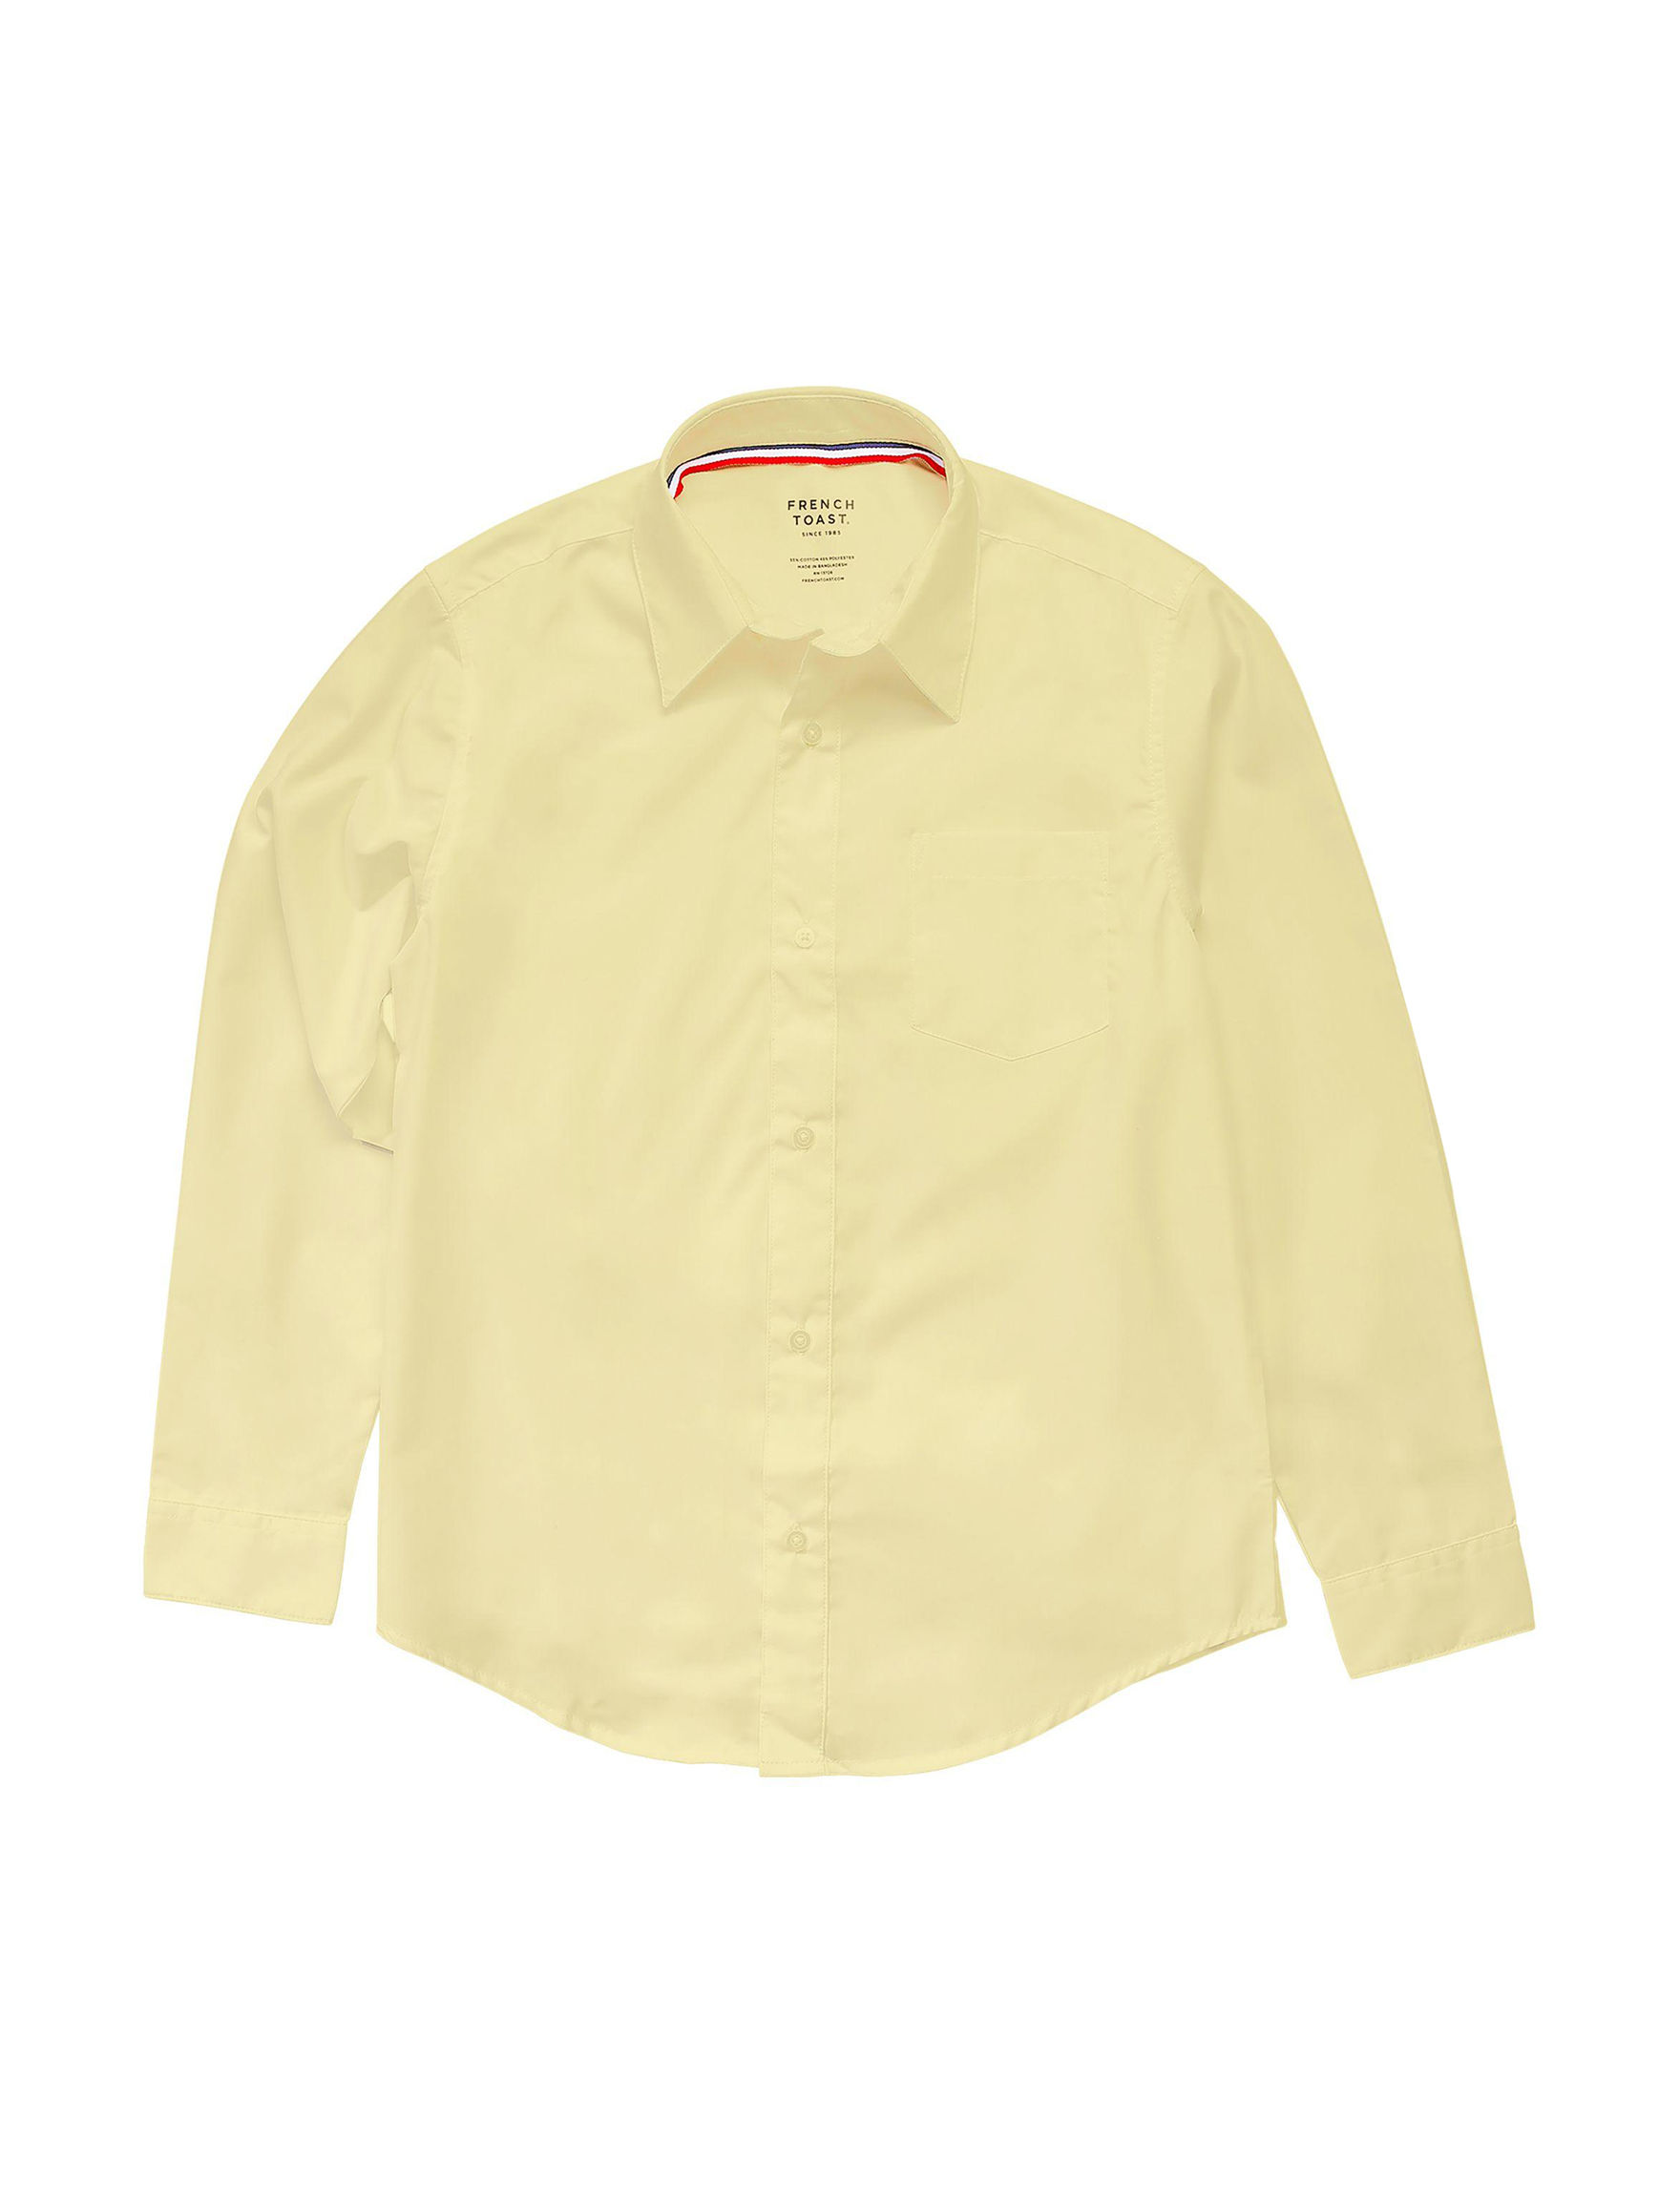 French Toast Yellow Shirts & Blouses